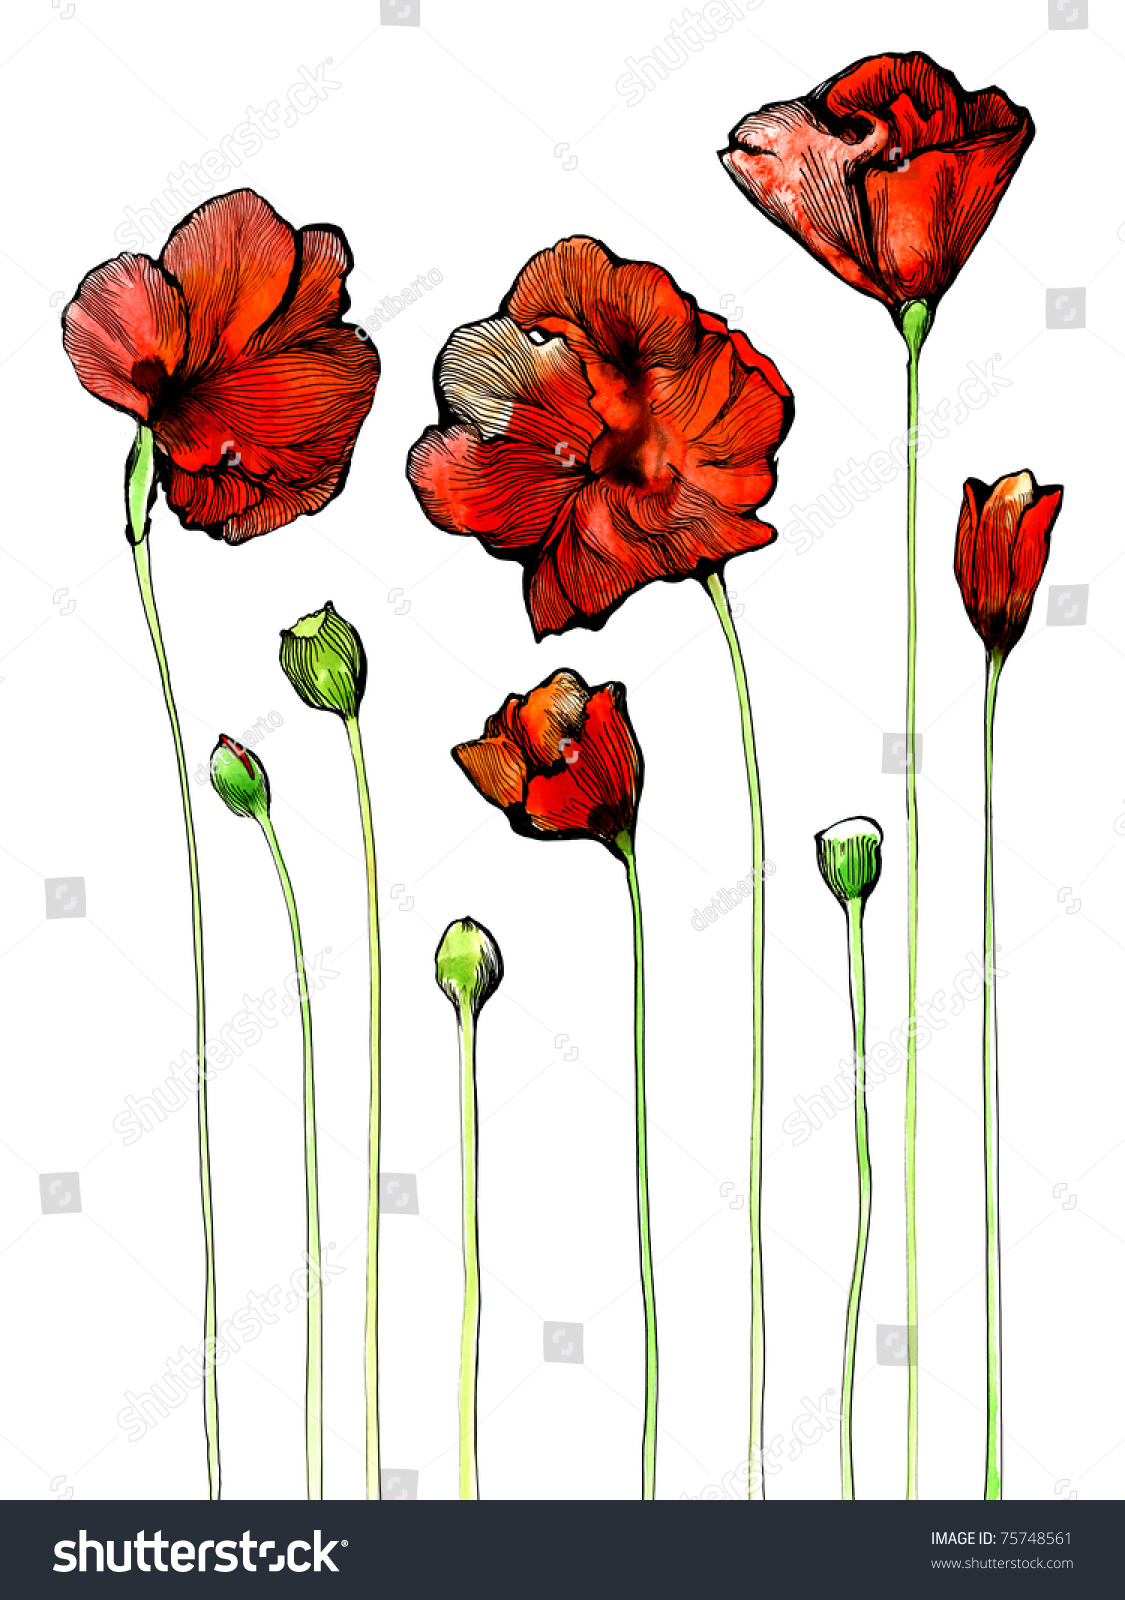 Pen And Ink Watercolor Flowers The Illustration Drawn With